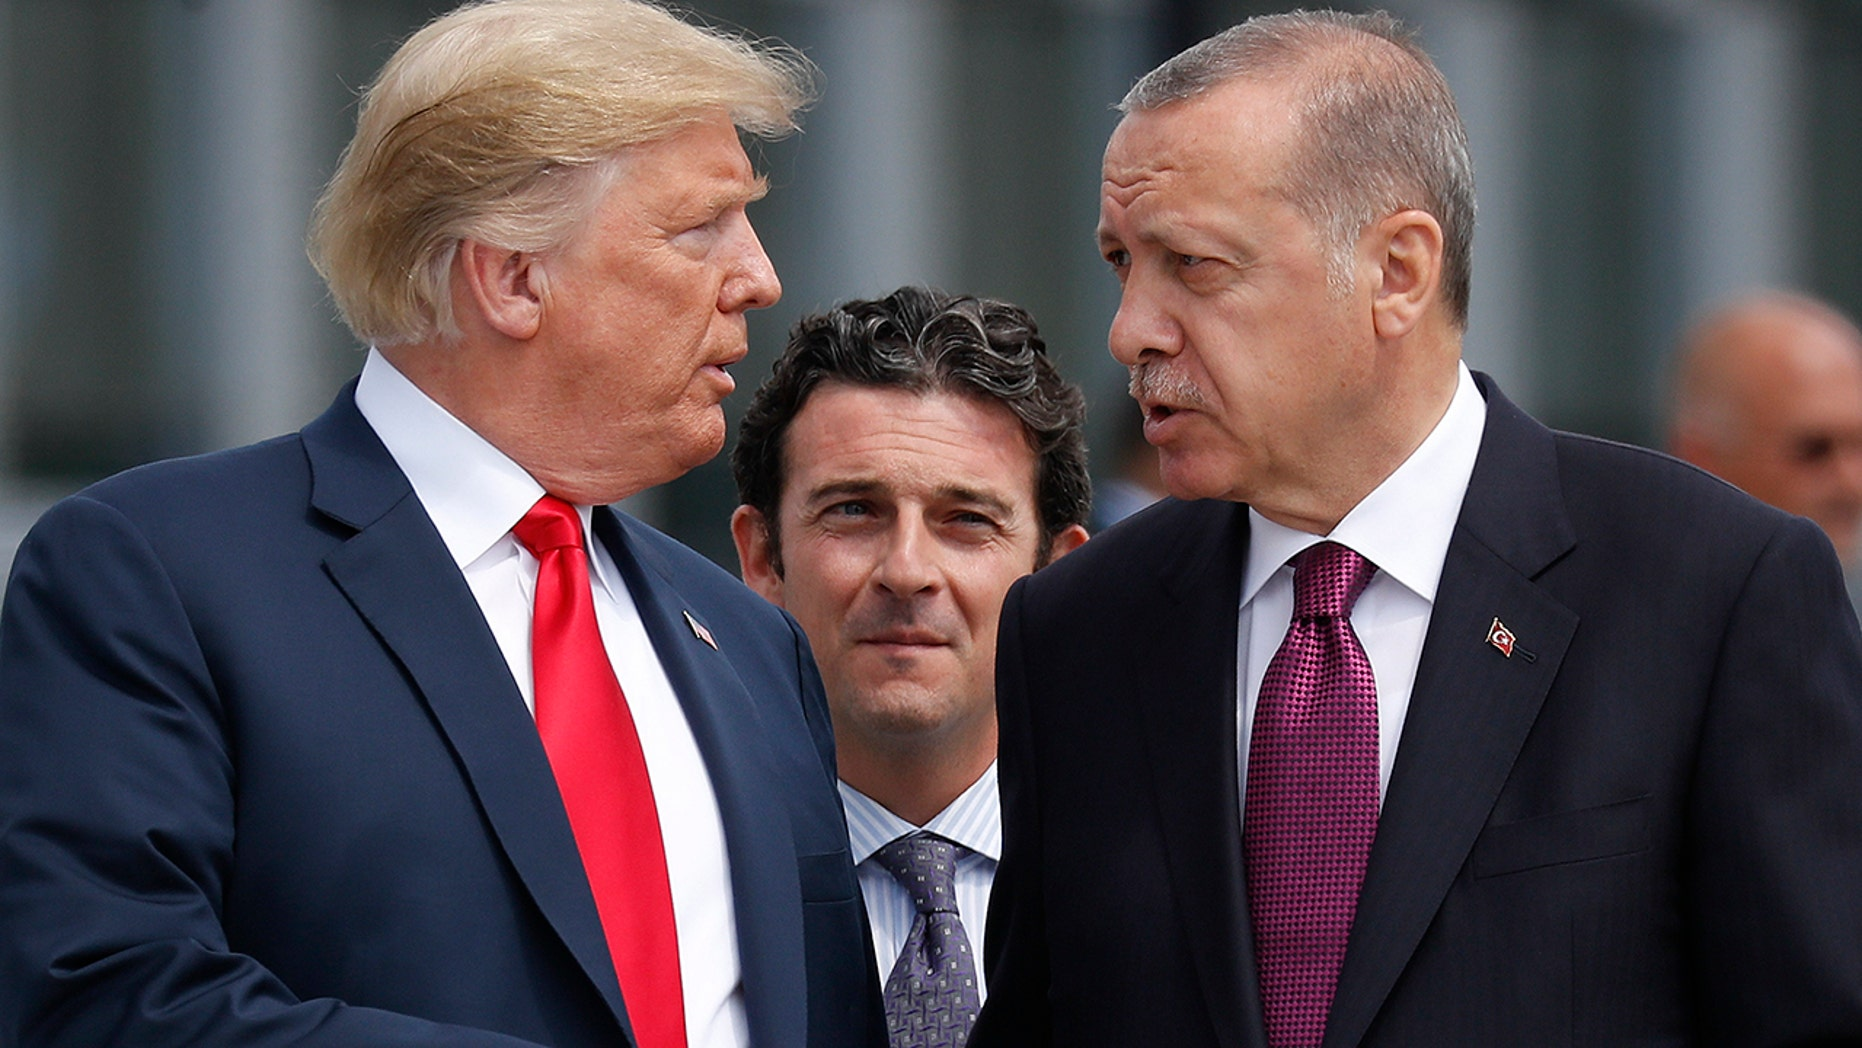 Westlake Legal Group Trump-Erdodgan-THUMB Trump's decision to make way for Turkey in Syria seen by critics as a Kurds betrayal Gerren Keith Gaynor fox-news/world/conflicts/syria fox-news/politics/executive fox news fnc/politics fnc cba86f8b-d166-5d61-93b2-d29a26938918 article